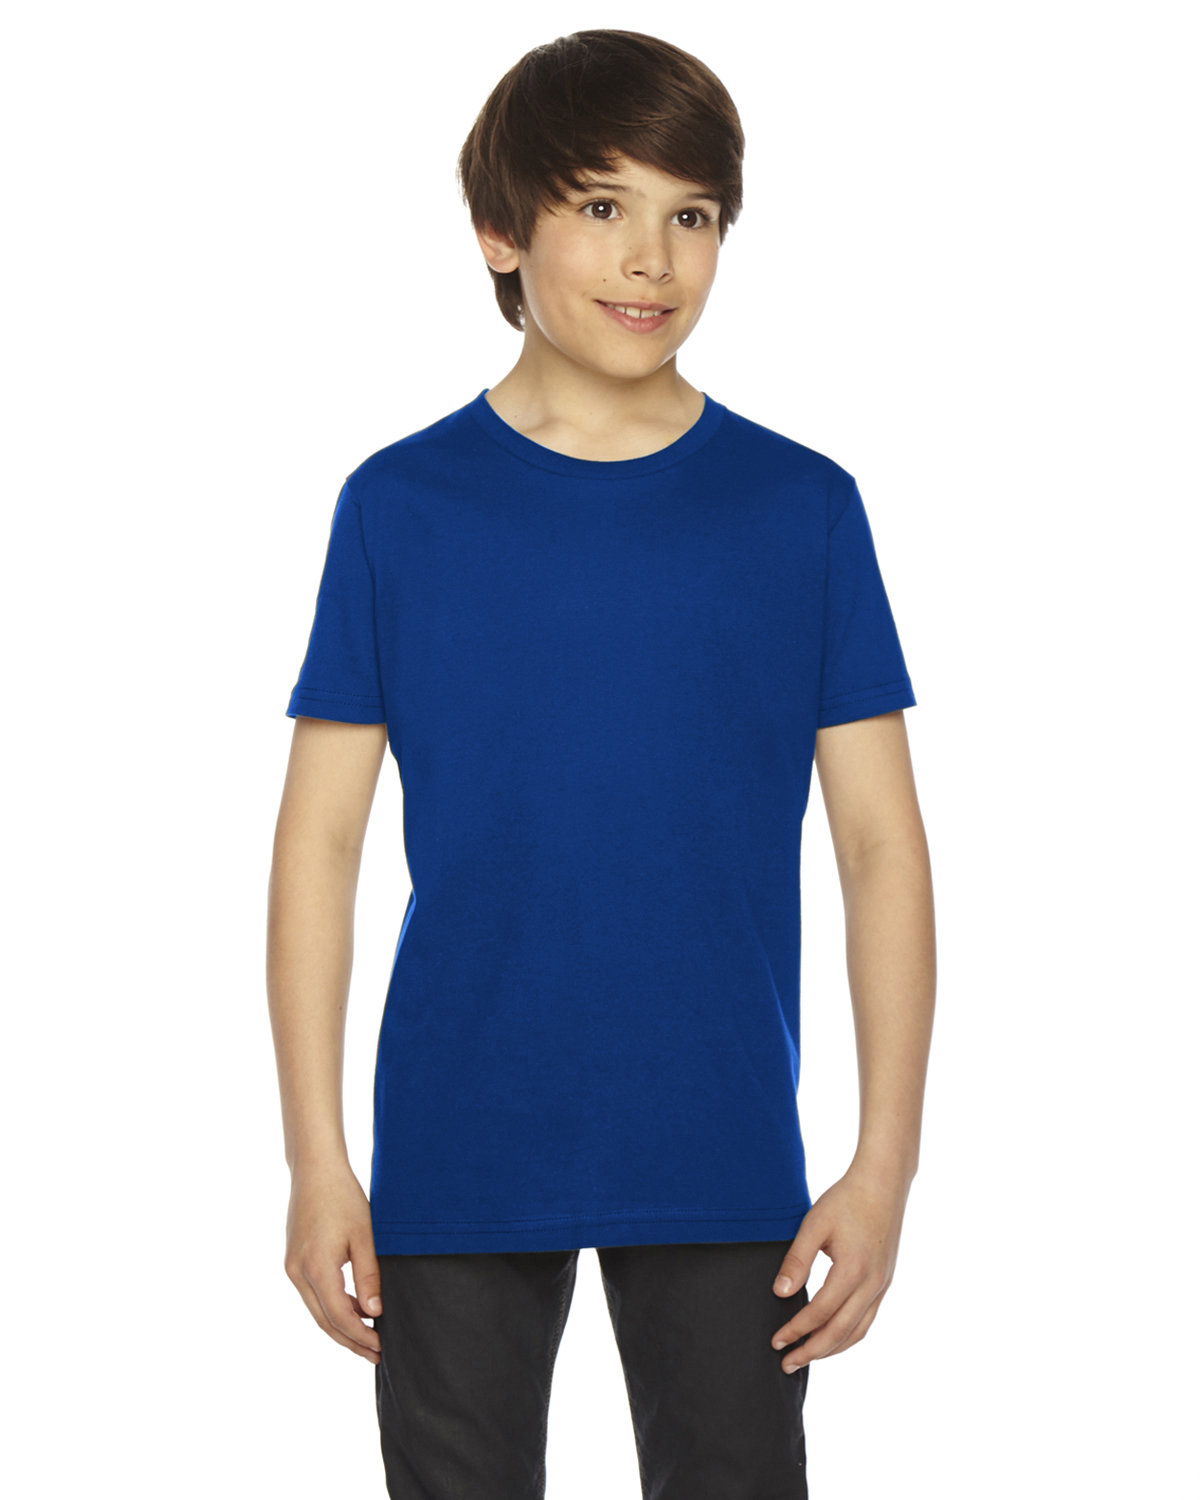 American Apparel Youth Fine Jersey USA Made Short-Sleeve T-Shirt LAPIS